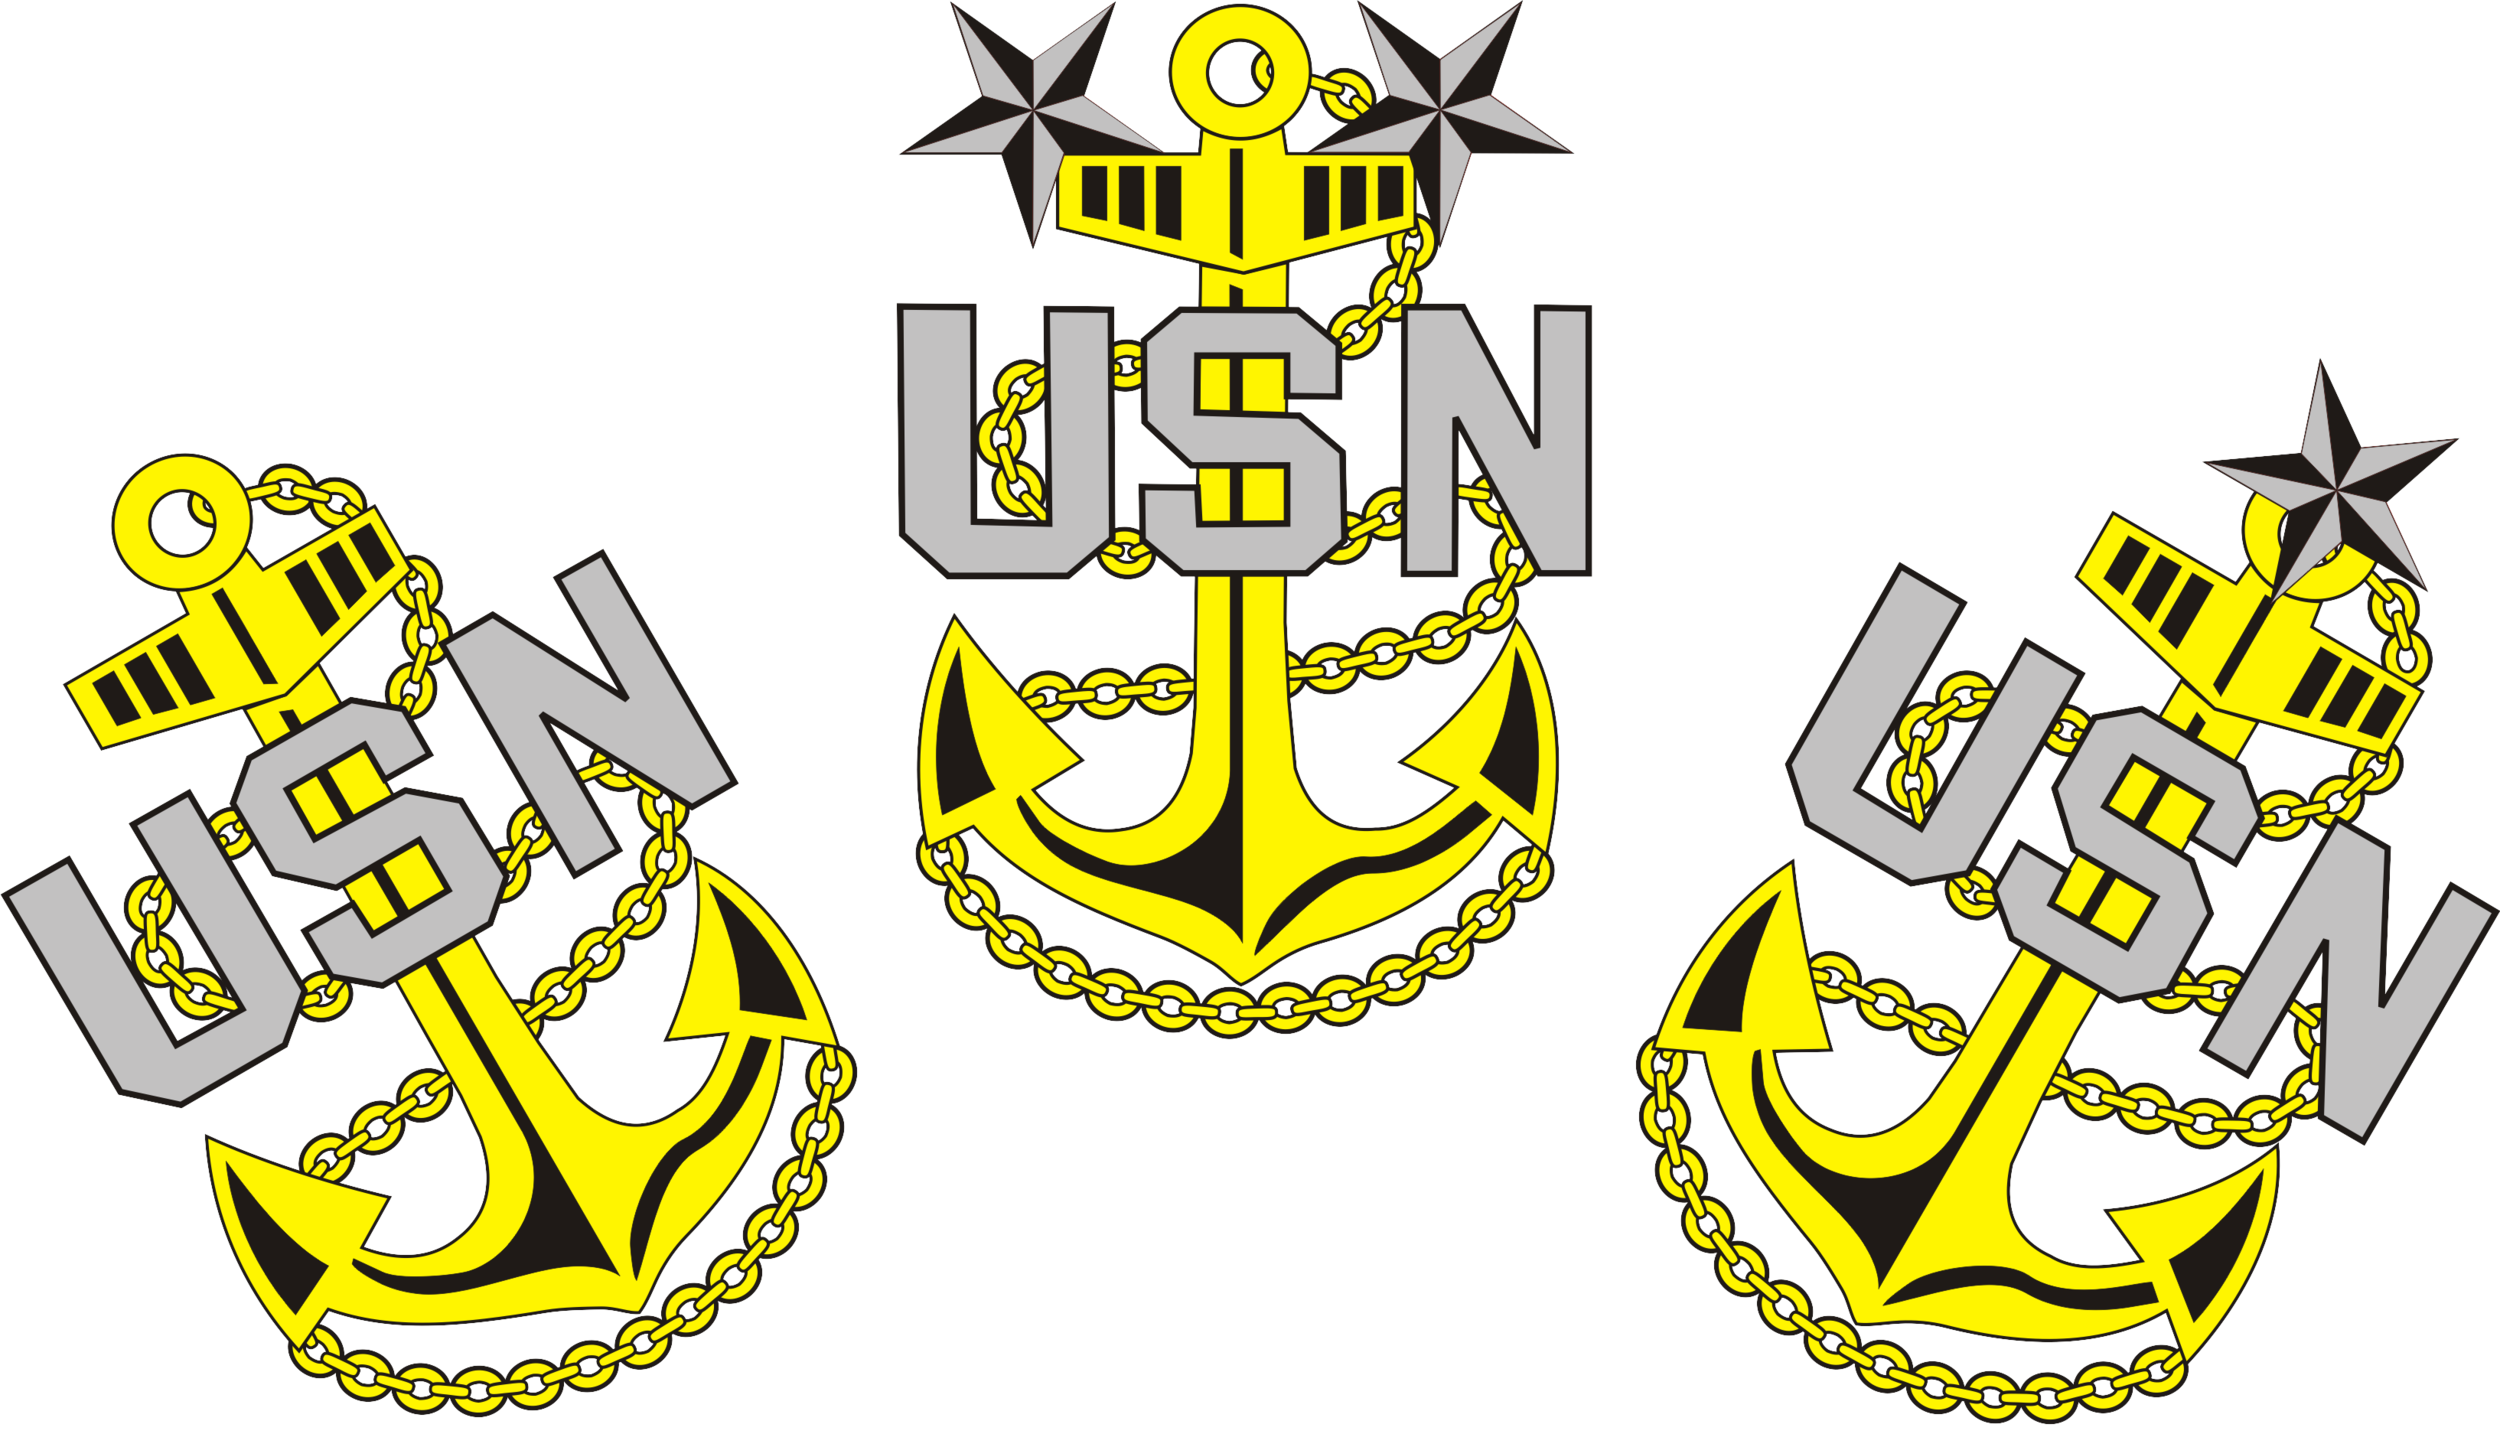 navy-chief-anchors-clipart-1.jpg.png